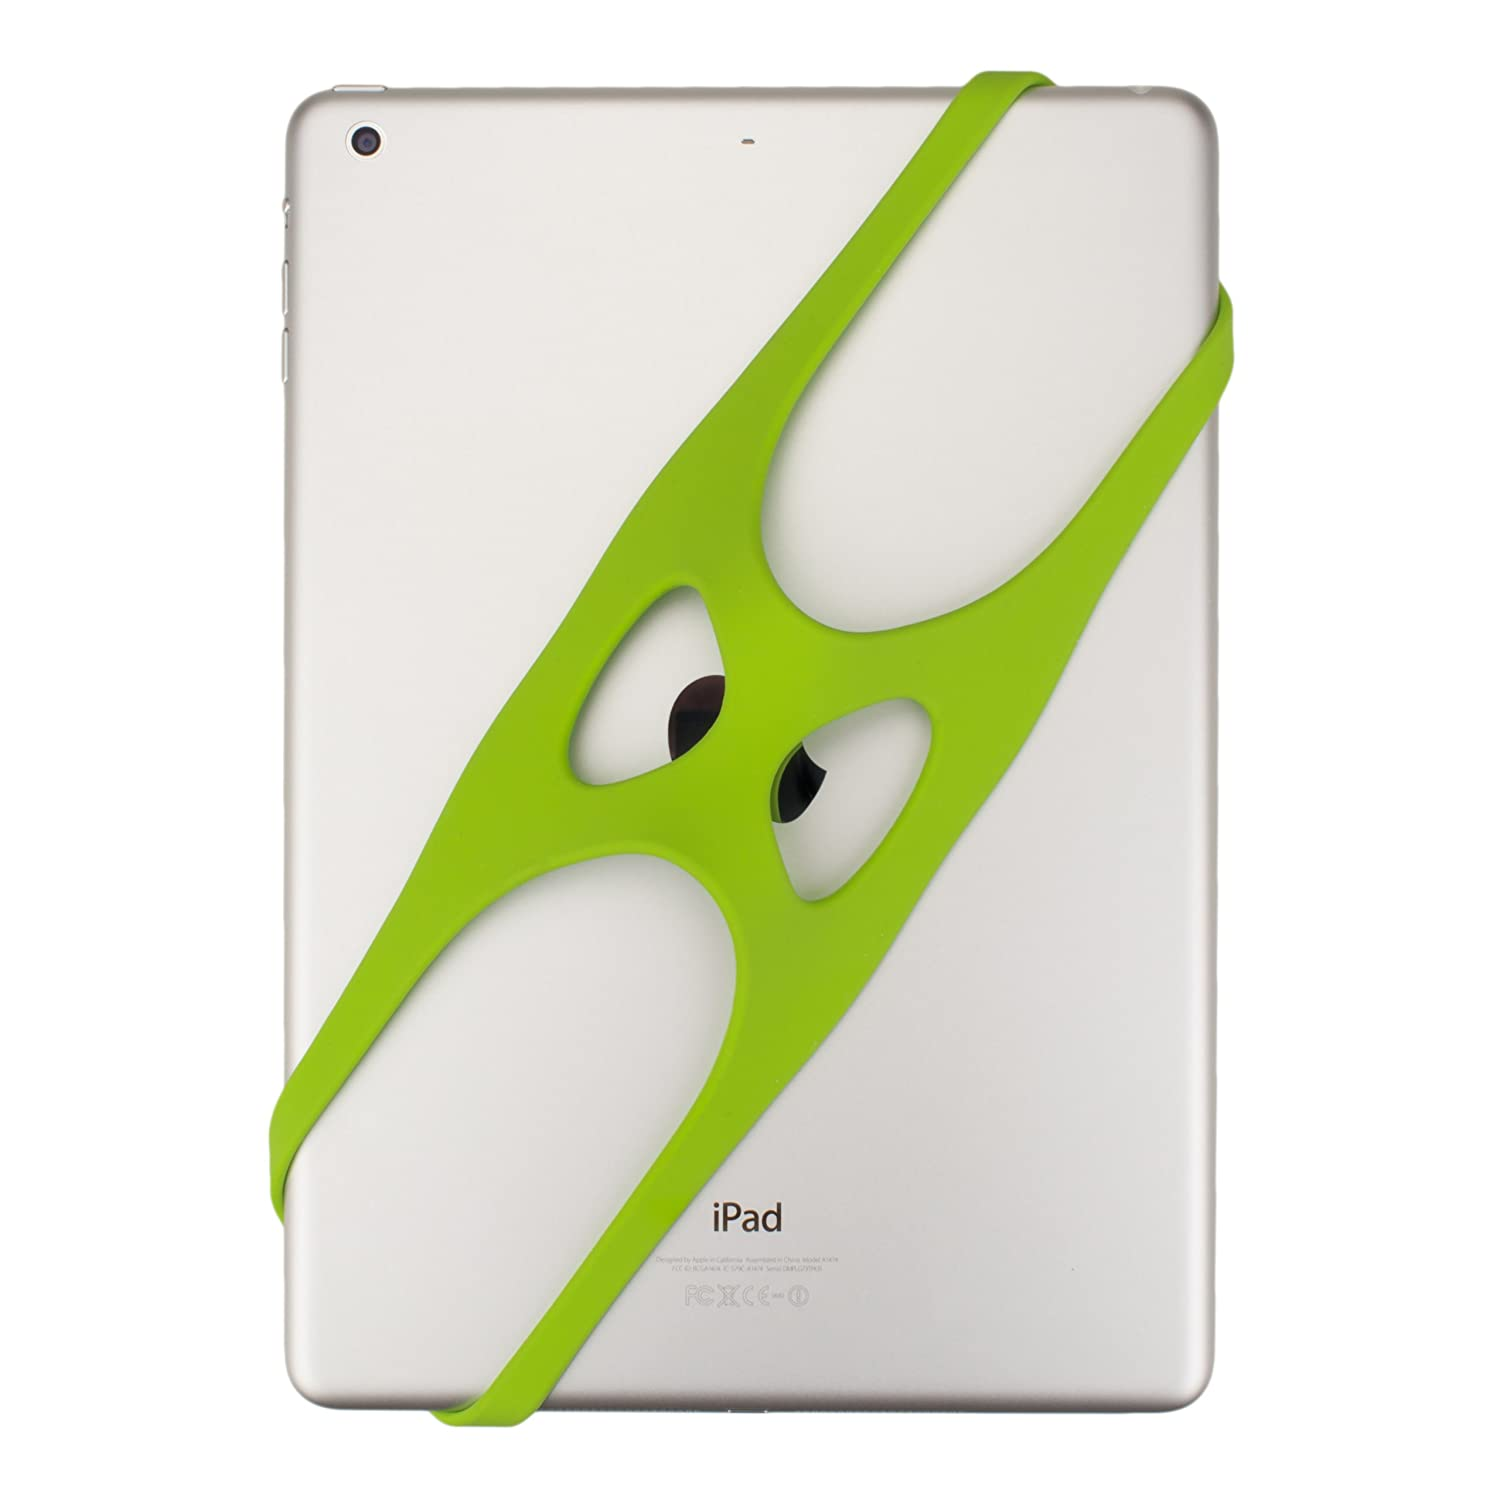 Padlette D4 Green at Amazon.com